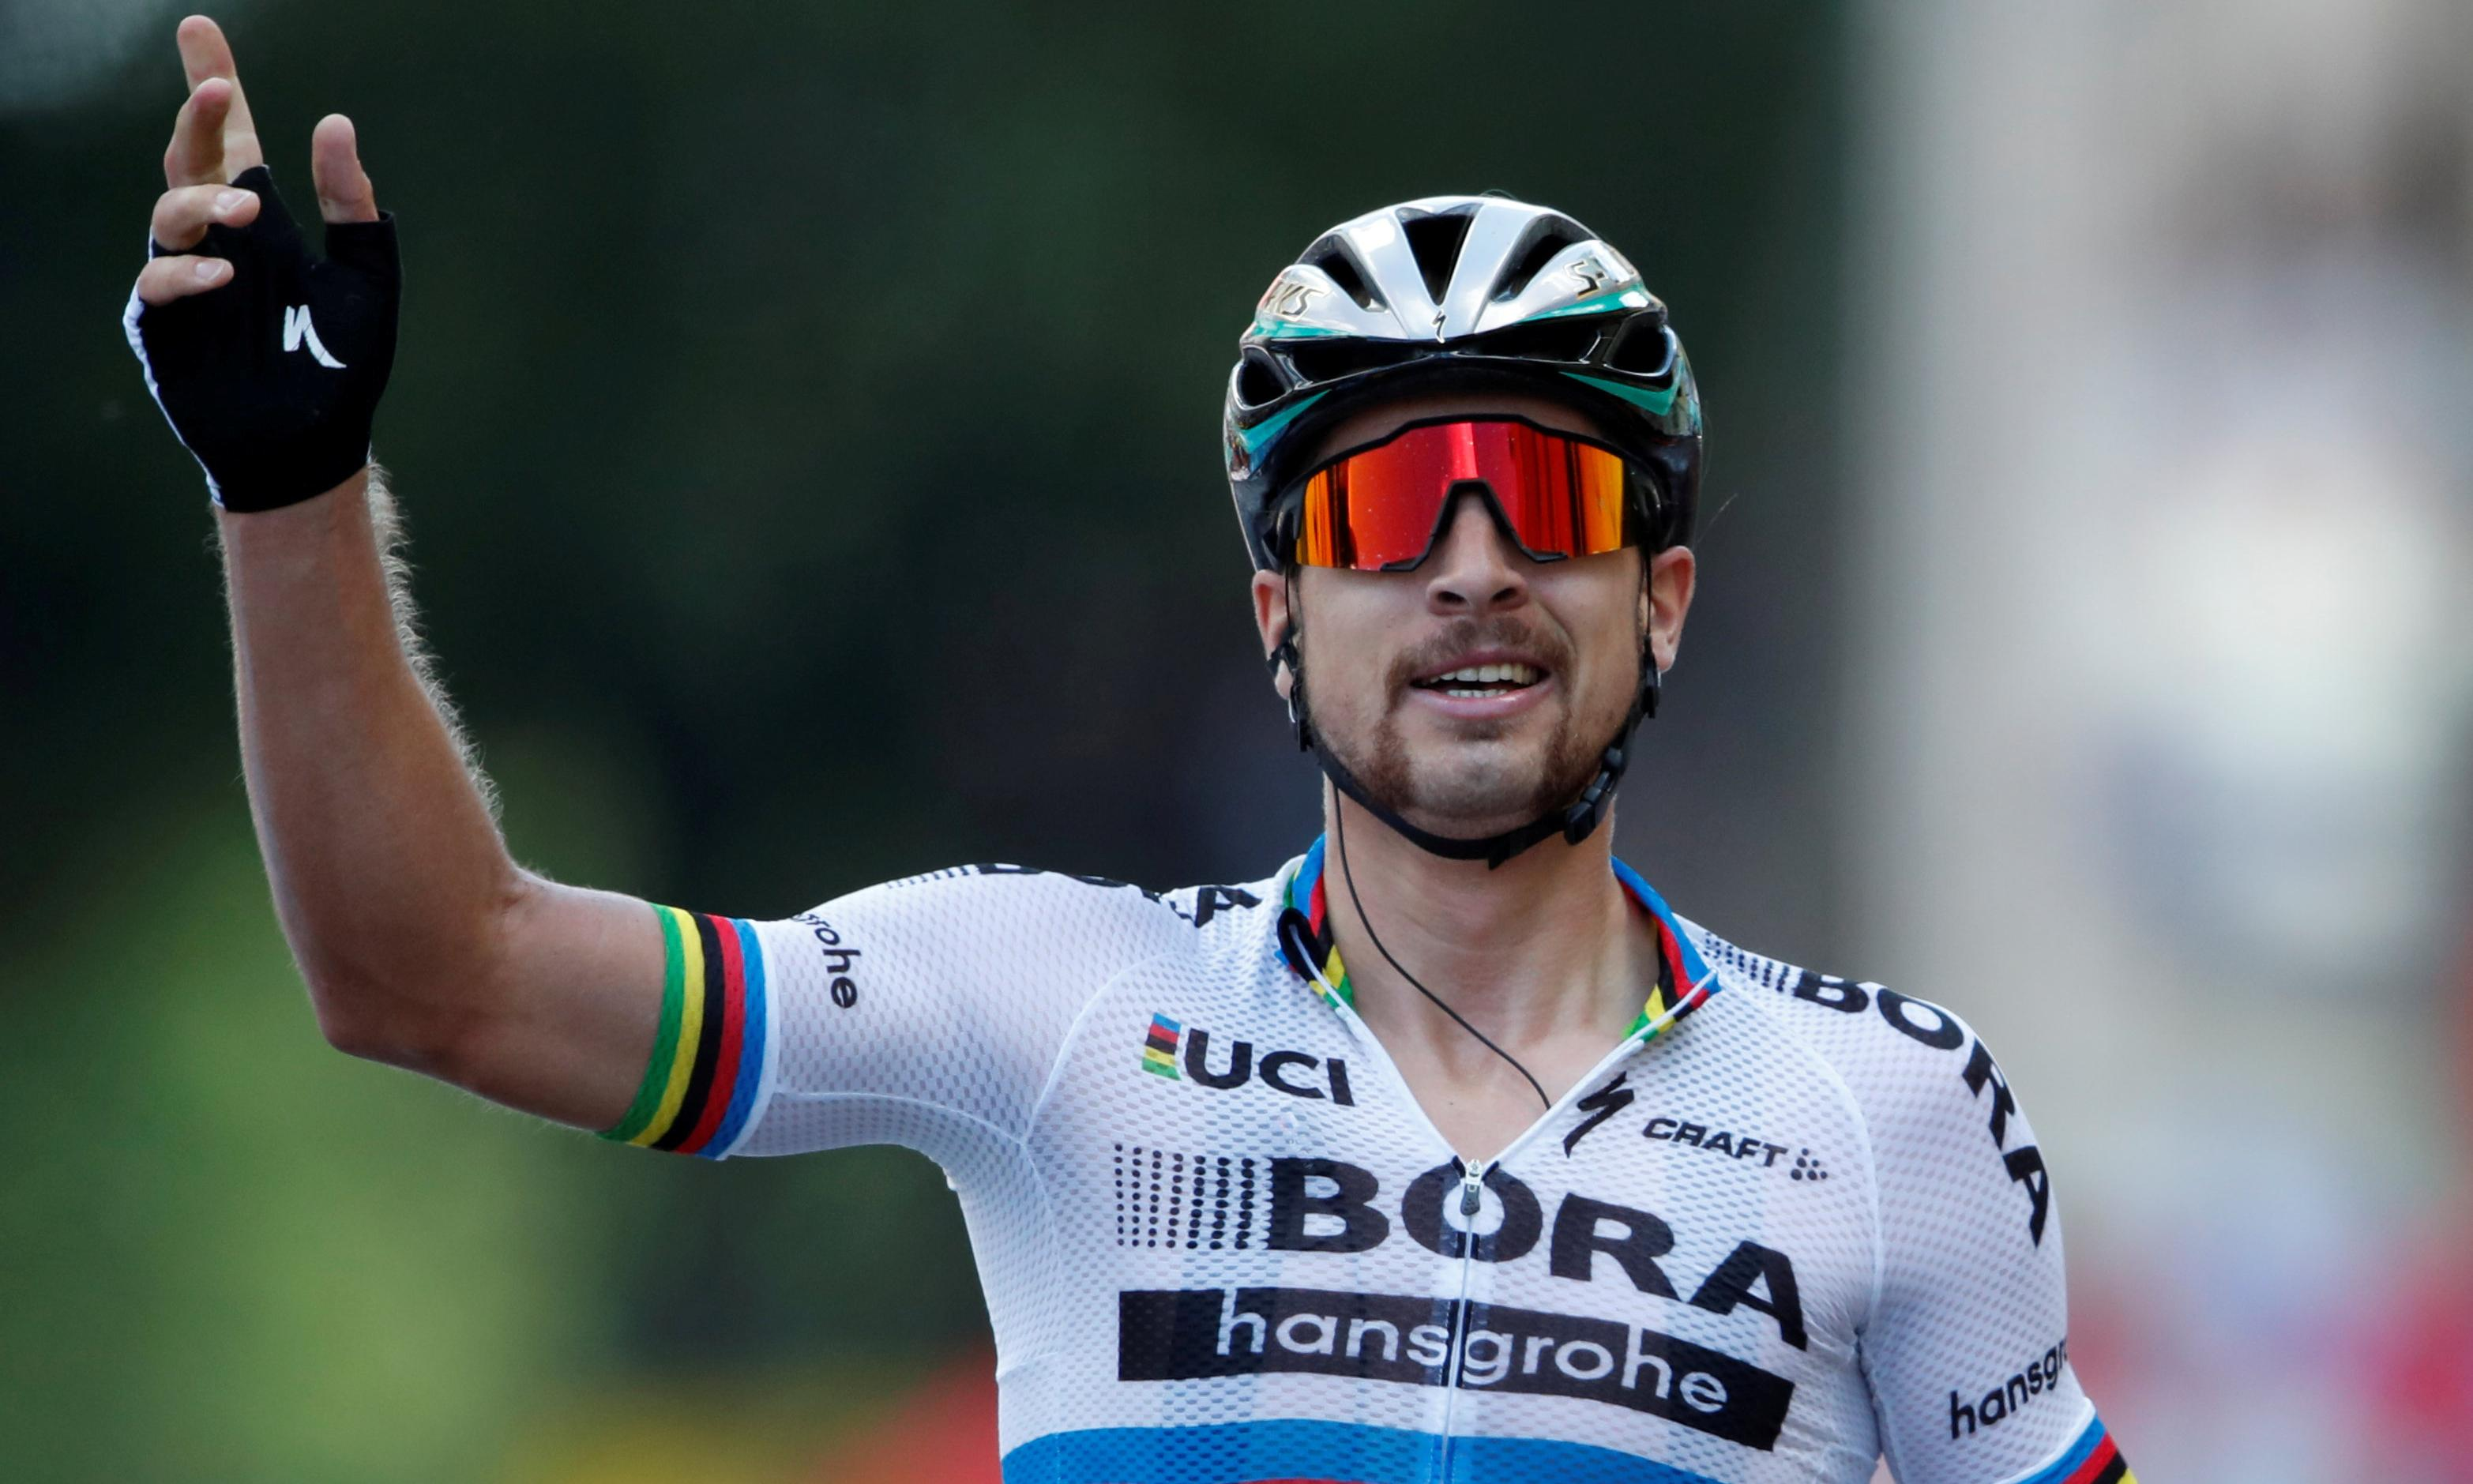 Tour de France will miss Peter Sagan's star power but safety must come first